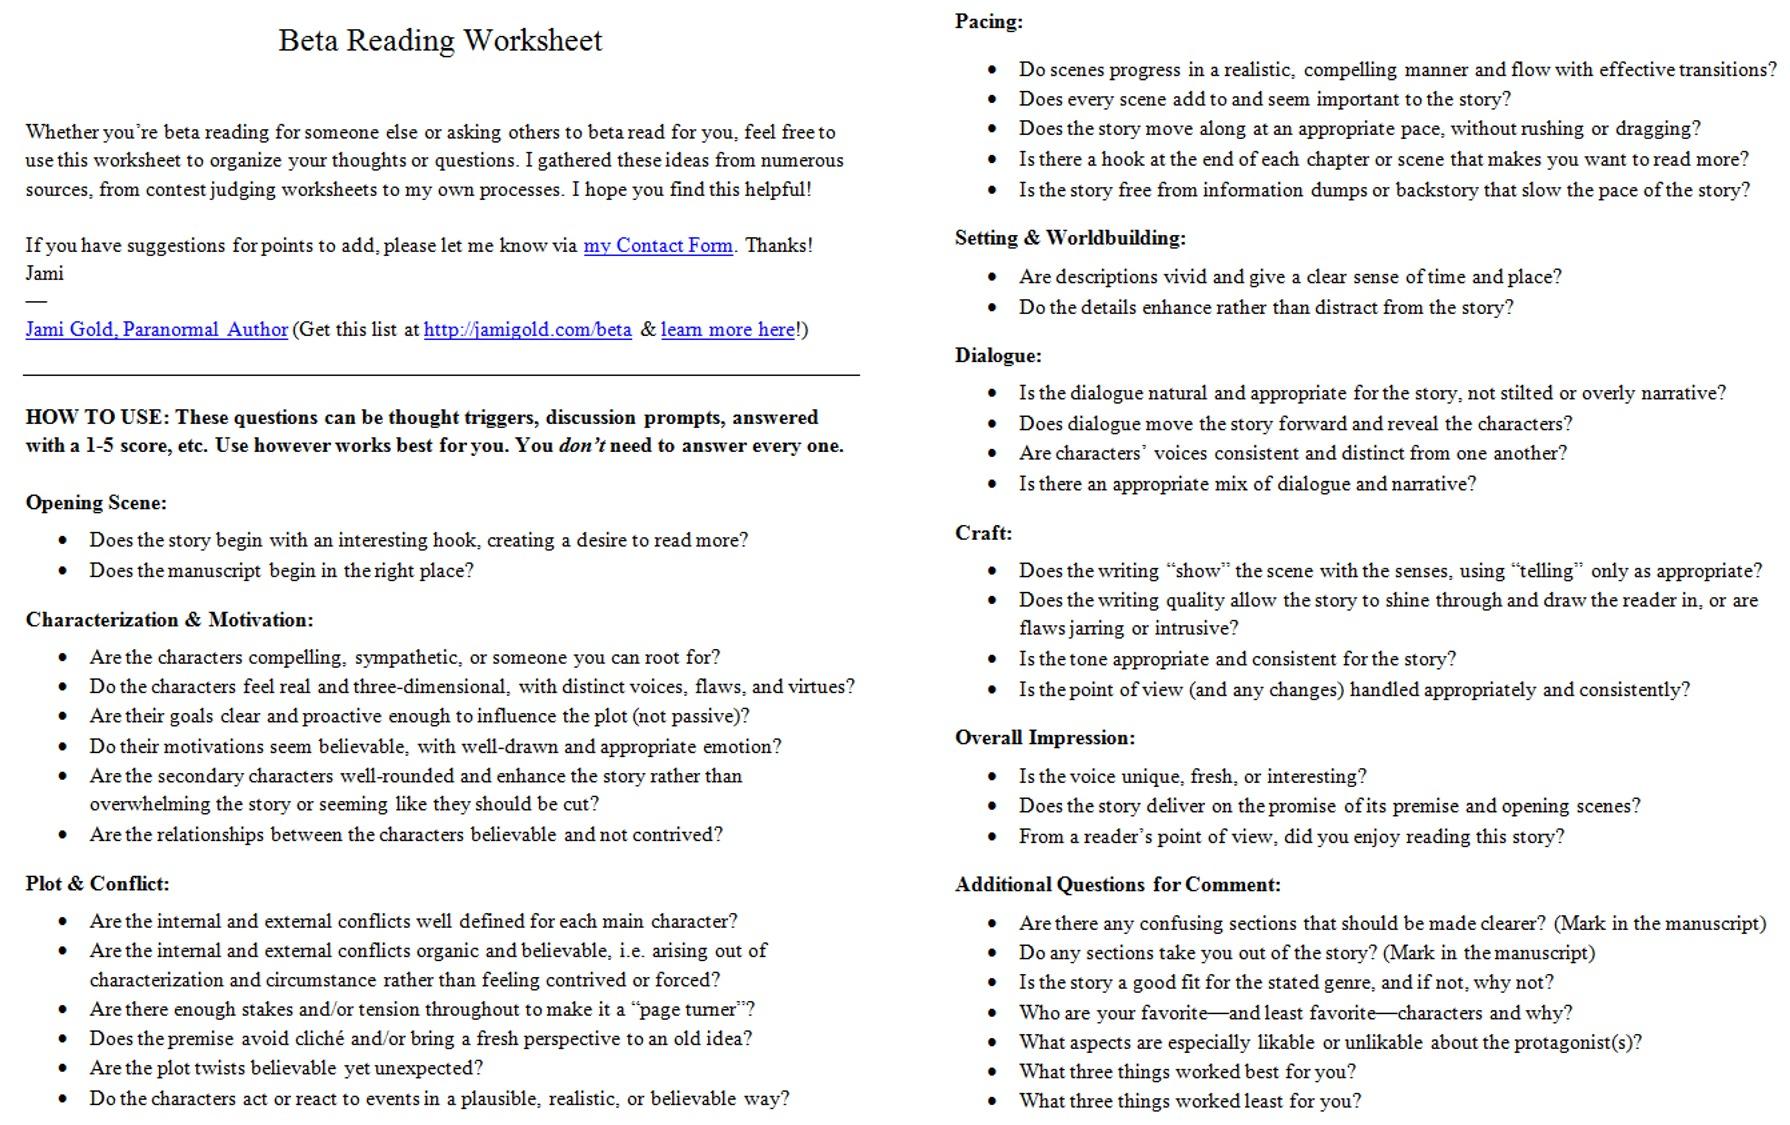 Aldiablosus  Inspiring Worksheets For Writers  Jami Gold Paranormal Author With Outstanding Screen Shot Of The Twopage Beta Reading Worksheet With Alluring Sacraments Worksheets Also More Or Less Preschool Worksheets In Addition Coordinating Adjectives Worksheet And Red Shift Worksheet As Well As Signs And Symbols Worksheet Additionally Mole Review Worksheet Answers From Jamigoldcom With Aldiablosus  Outstanding Worksheets For Writers  Jami Gold Paranormal Author With Alluring Screen Shot Of The Twopage Beta Reading Worksheet And Inspiring Sacraments Worksheets Also More Or Less Preschool Worksheets In Addition Coordinating Adjectives Worksheet From Jamigoldcom